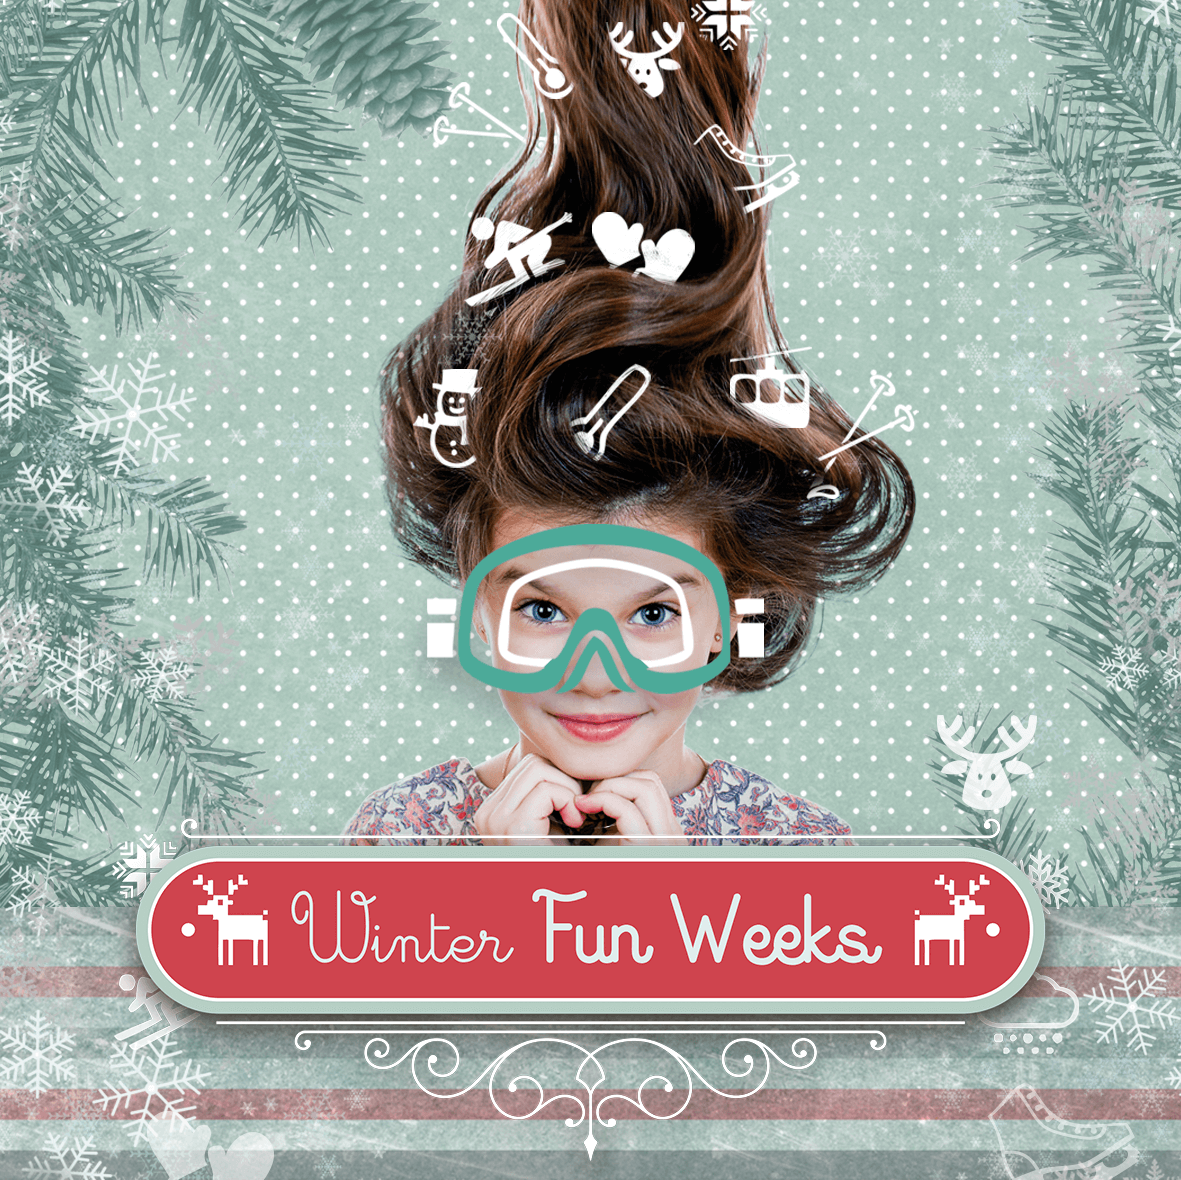 Winter Fun Weeks are coming!